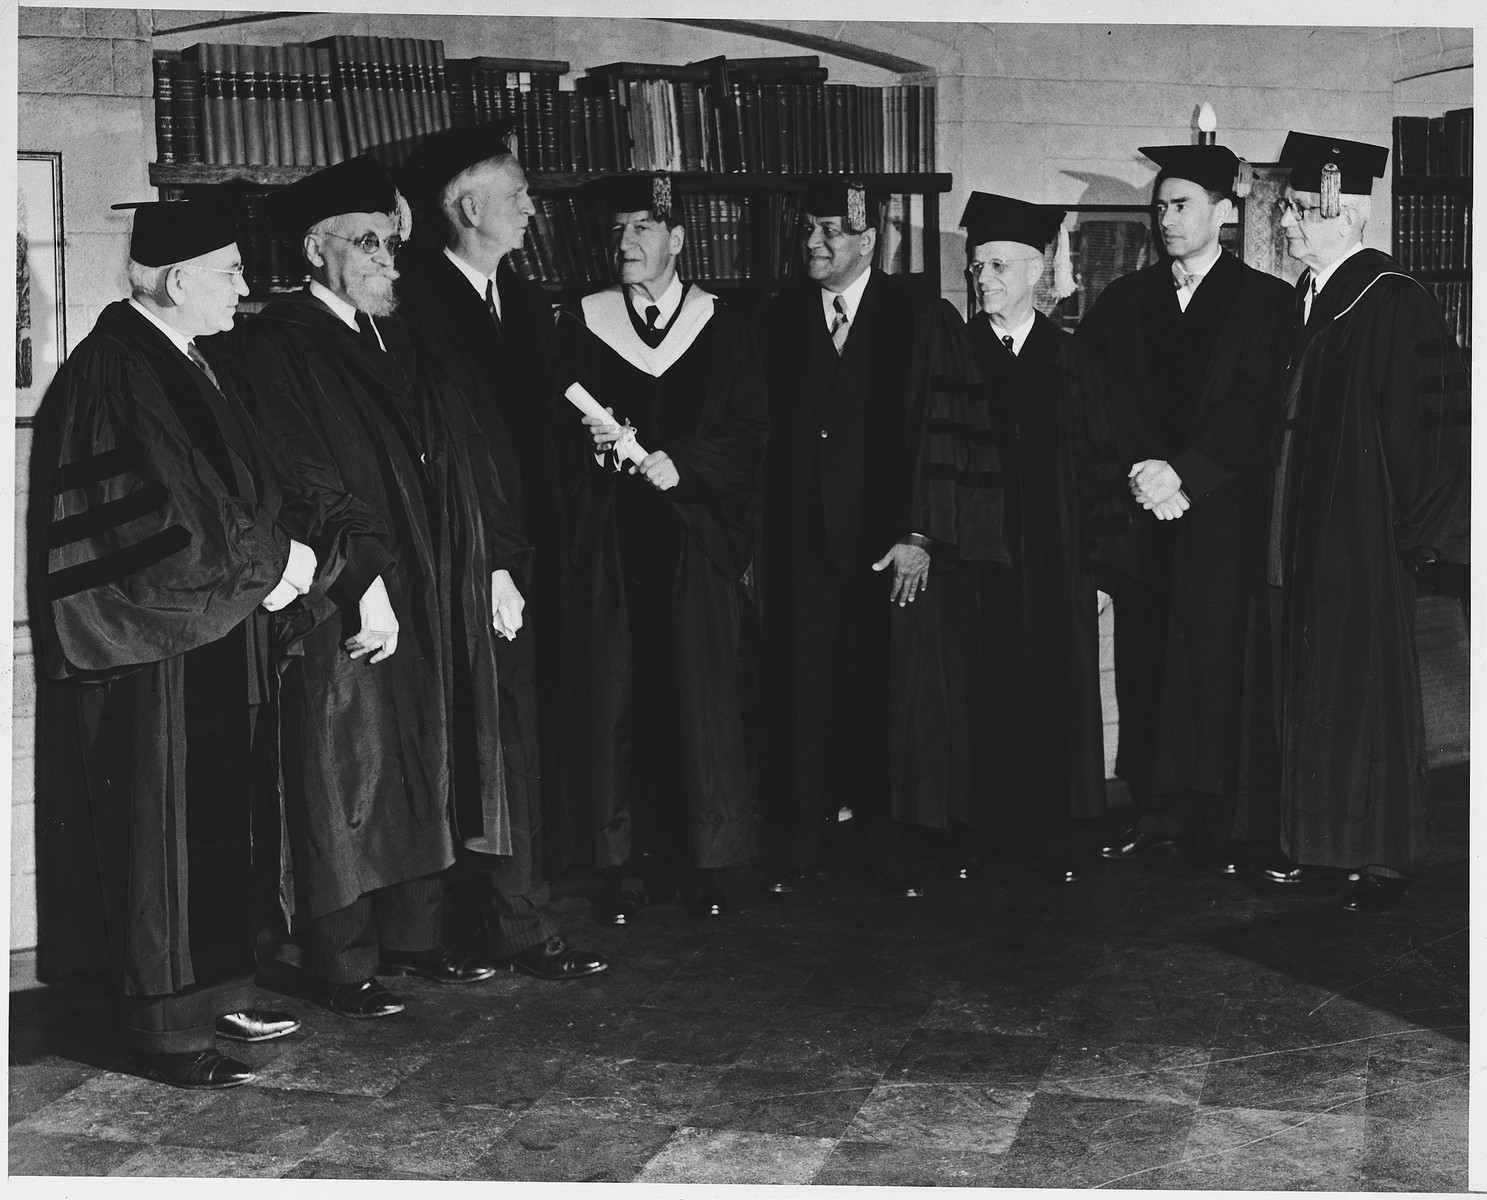 Group portrait of faculty members and recipients of honorary degrees at the 1947 commencement of the Jewish Institute of Religion in New York.  Among the honorees is James G. McDonald.  Pictured from left to right are Rabbi Solomon Goldman (Anshe Emet Synagogue, Chicago), Dr. Chaim Tchernowitz (professor of Talmud), James G. McDonald (member of the Anglo-American Committee of Inquiry on Palestine), Dr. Stephen S. Wise, Dr. Channing Tobias (religious and social leader), Dr. Julian Morgenstern (president of Hebrew Union College, Dr. Nelson Glueck (president-elect of the Hebrew Union College), and Dr. Henry Slonimsky (dean of the faculty).